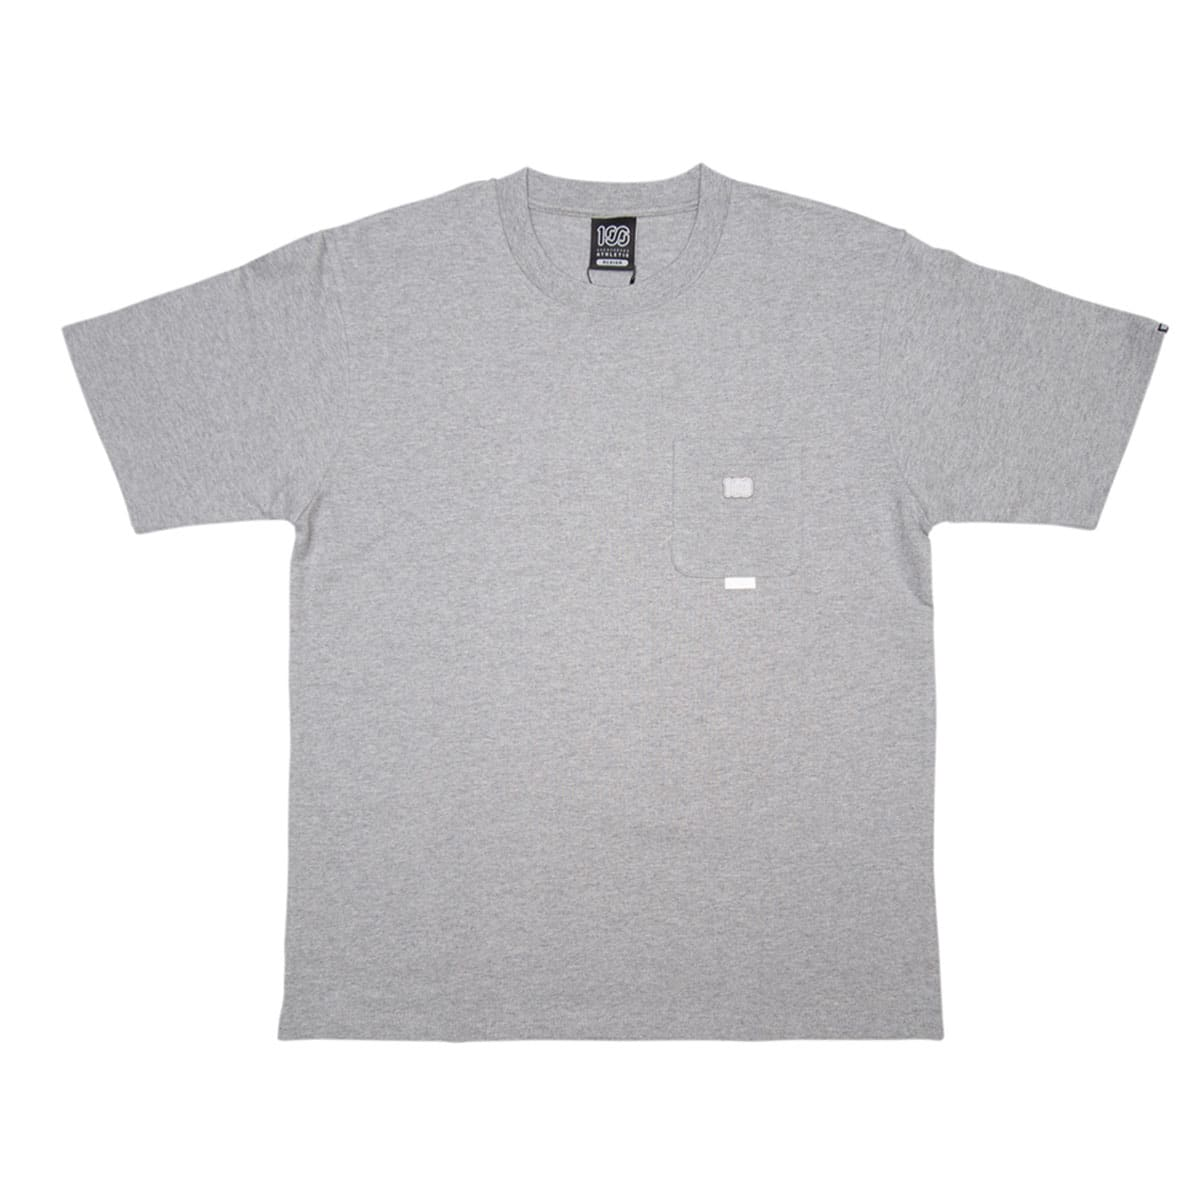 100A THICK JERSEY S/S TOP with pocket GREY 20FA-I_photo_large